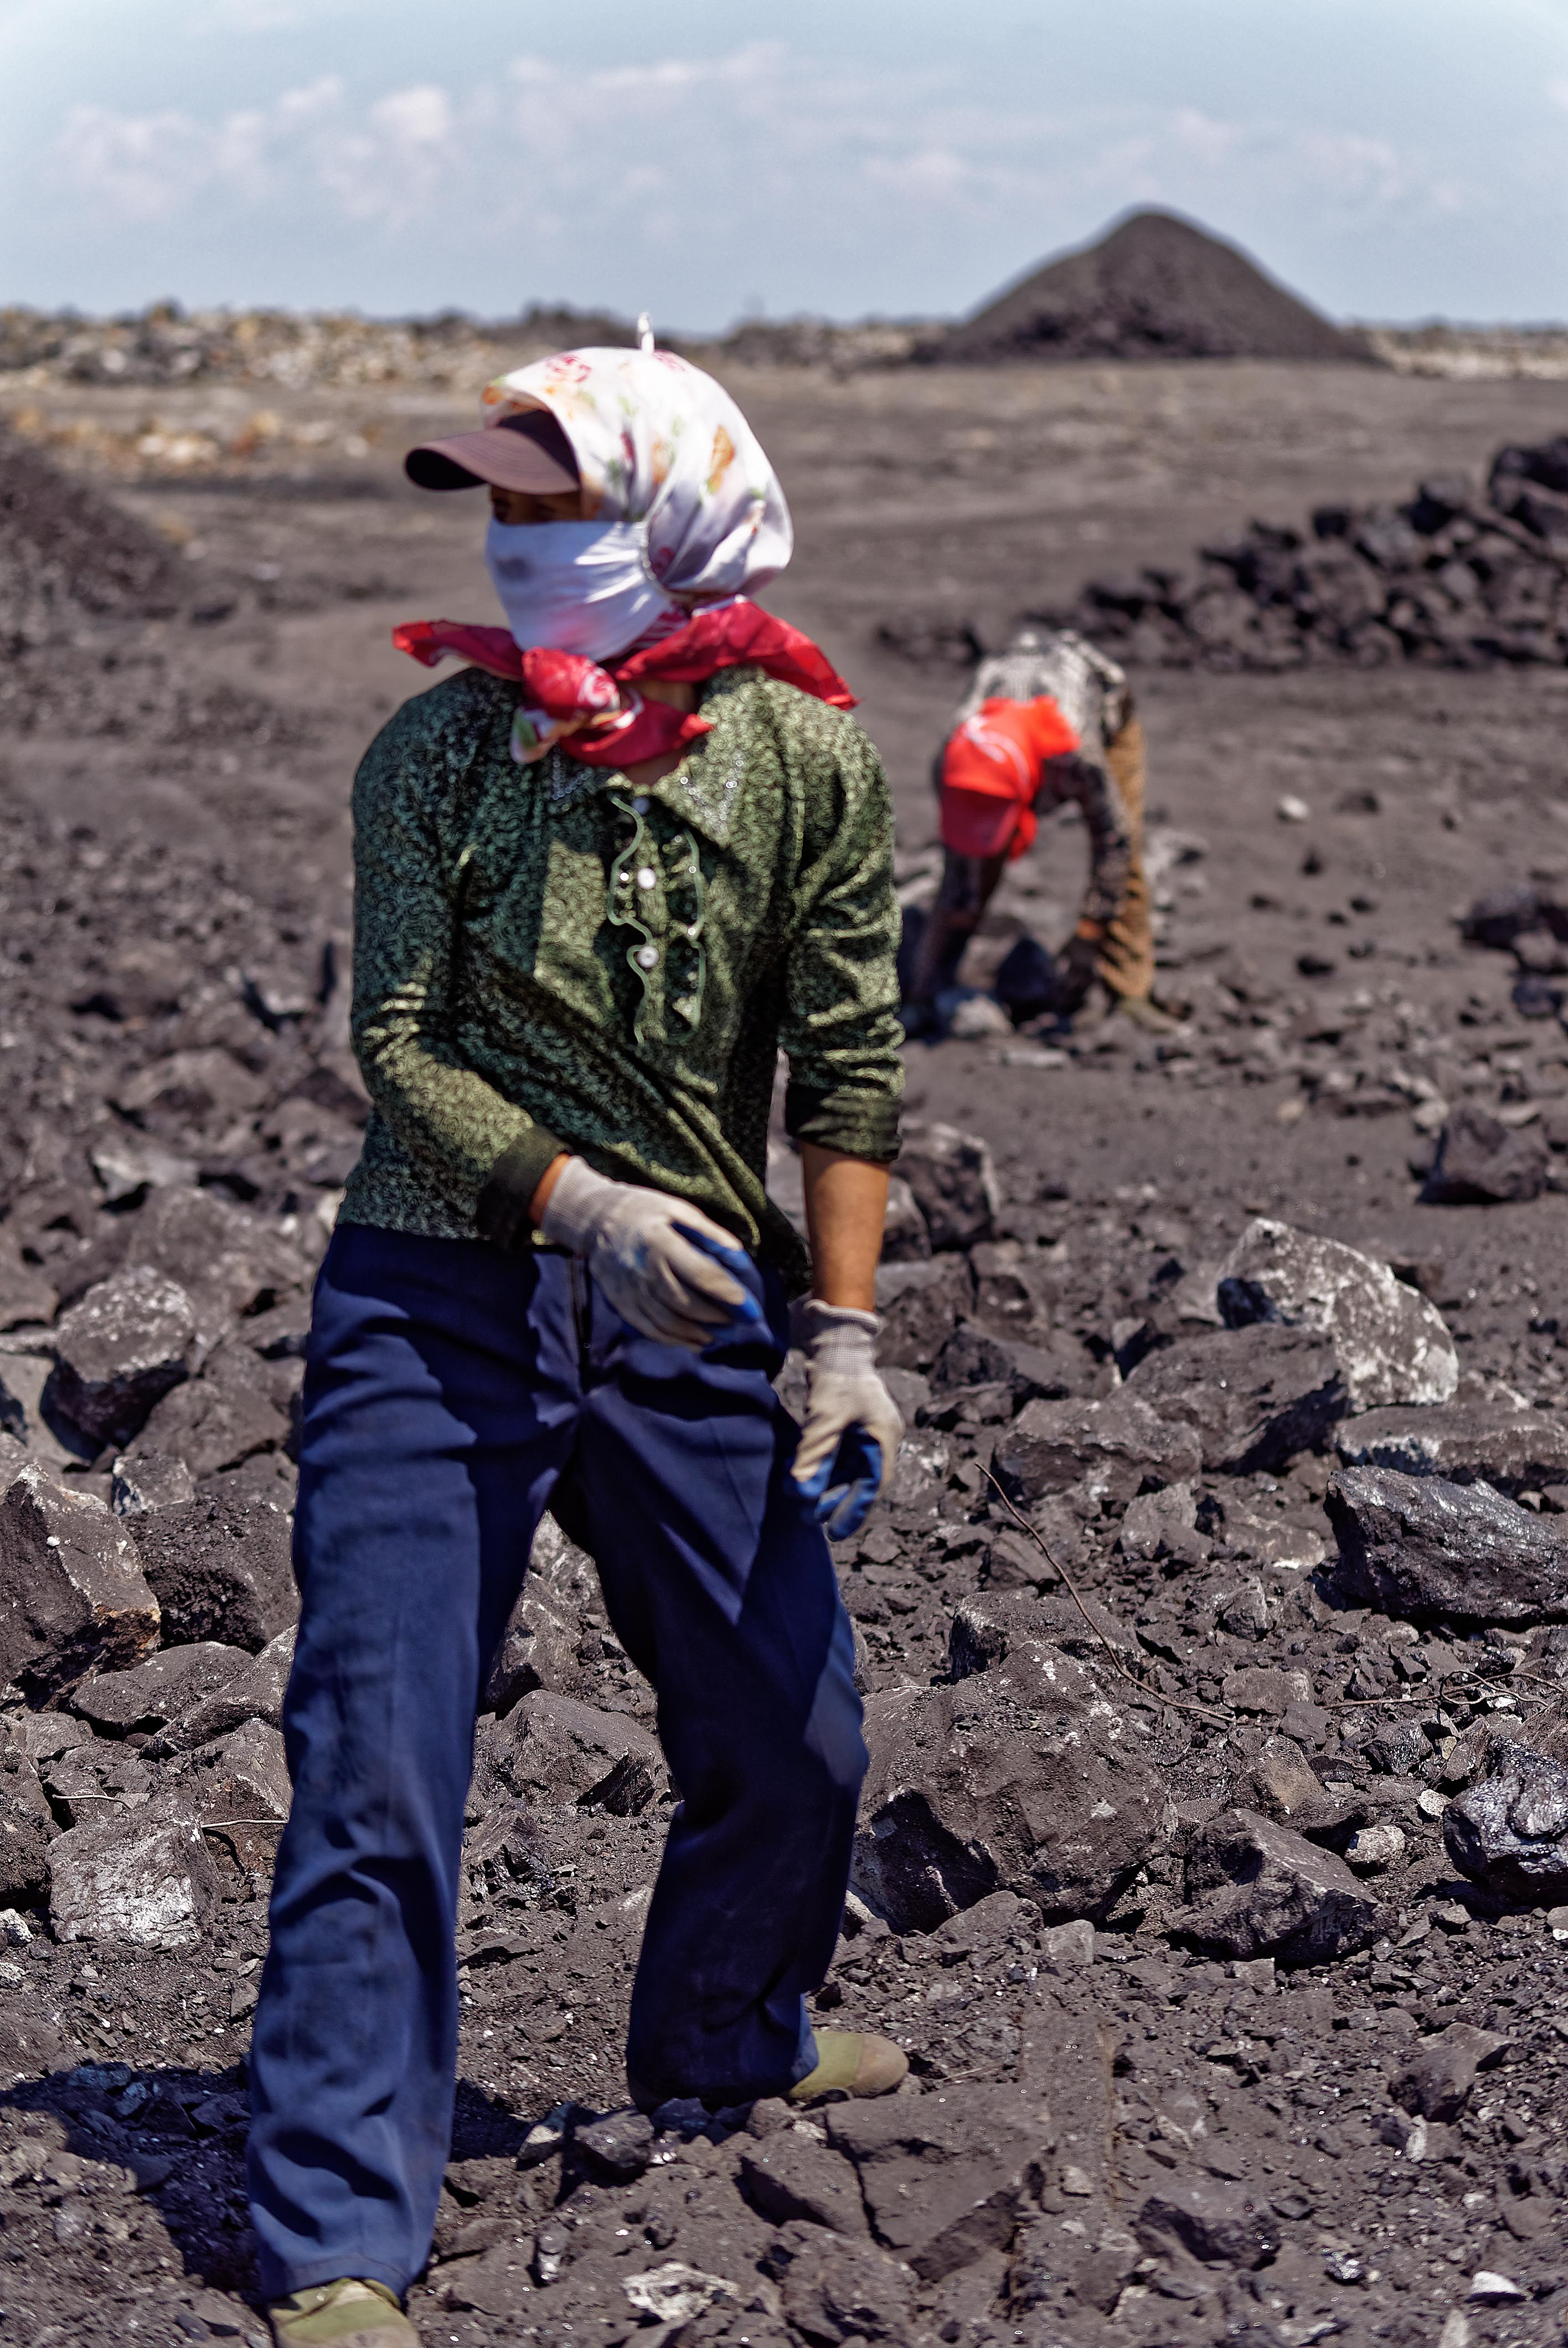 Women can selected coal from rocks